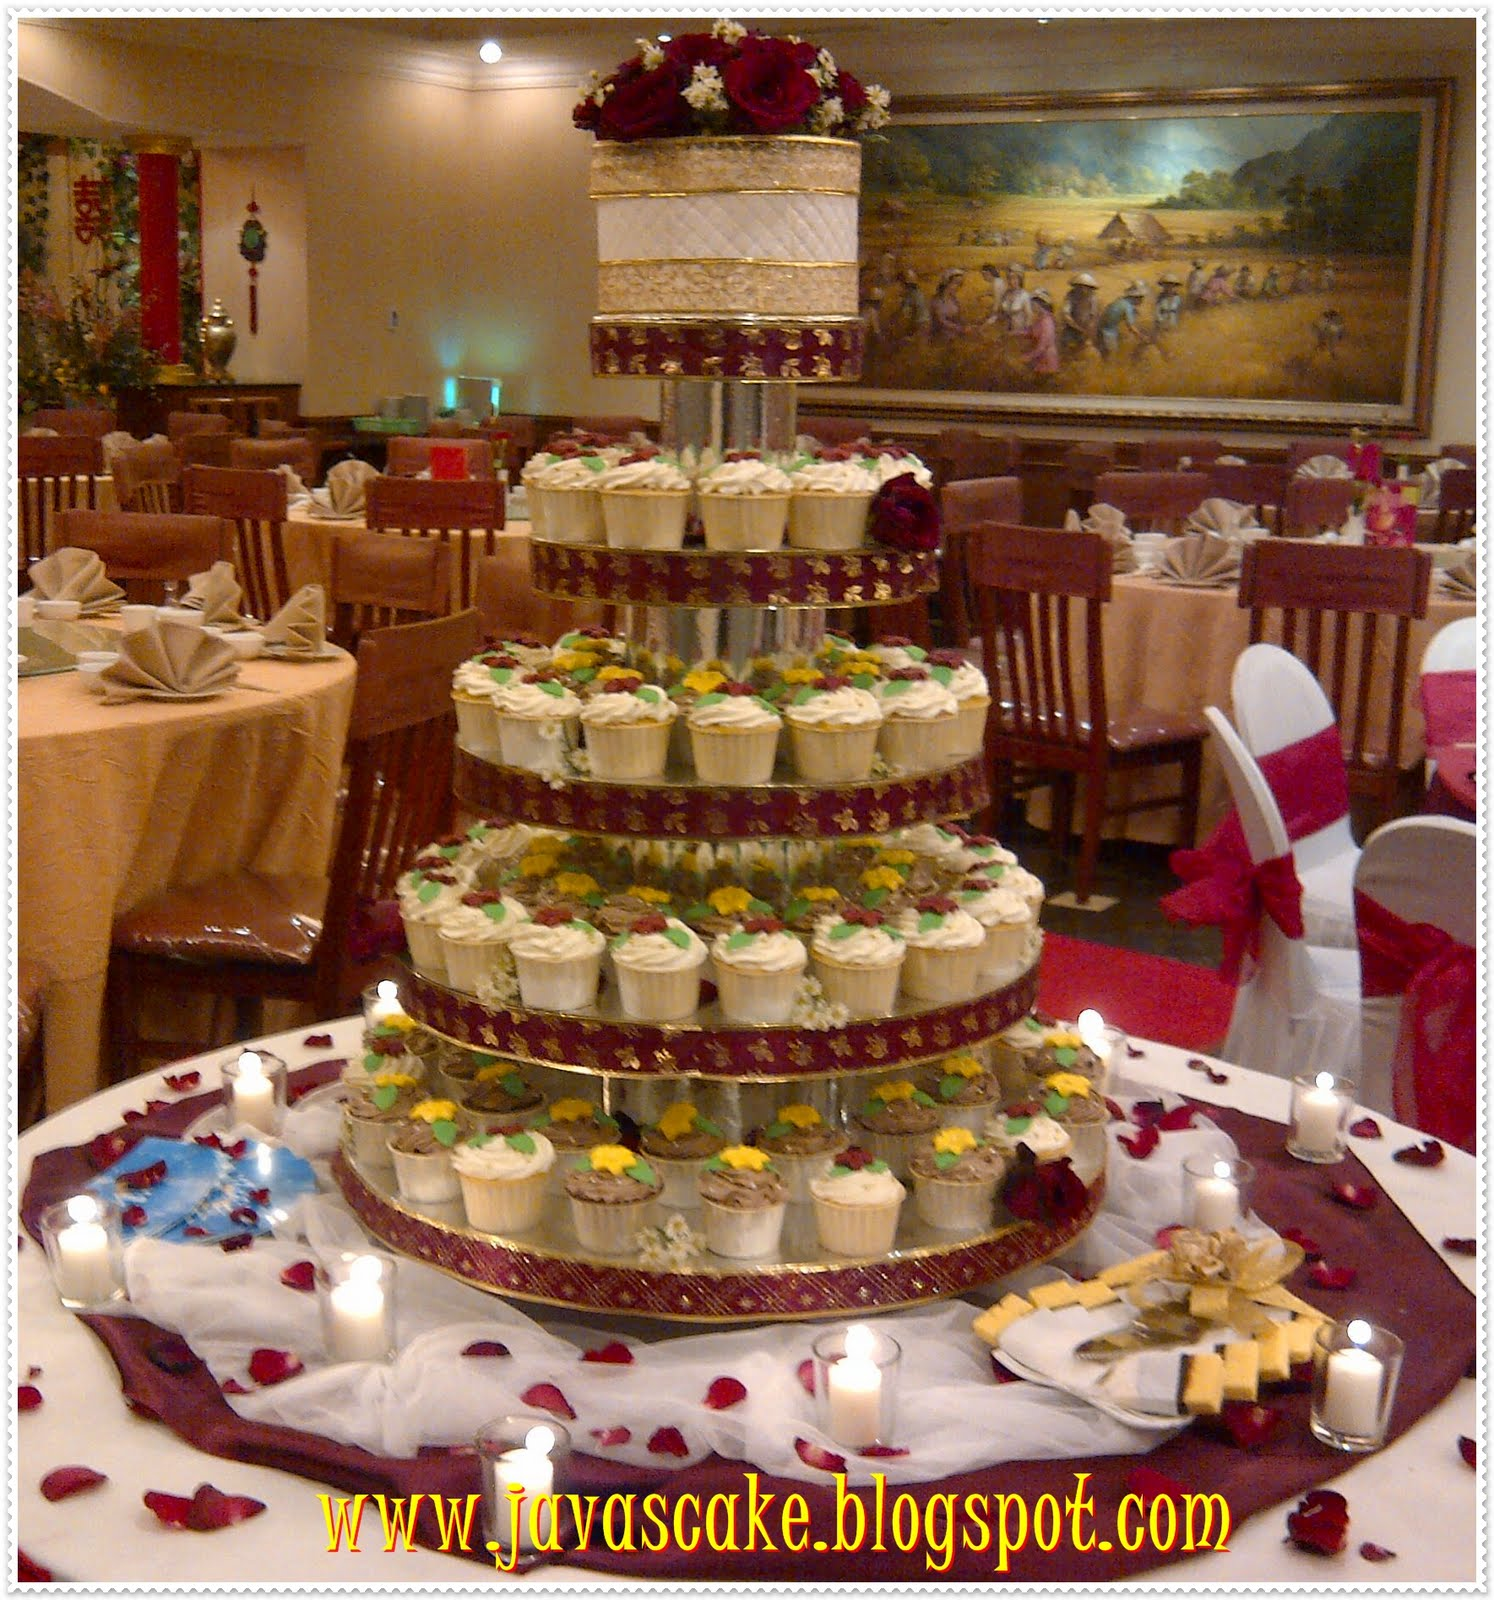 J va S Cake red and gold wedding CupCakes for Via